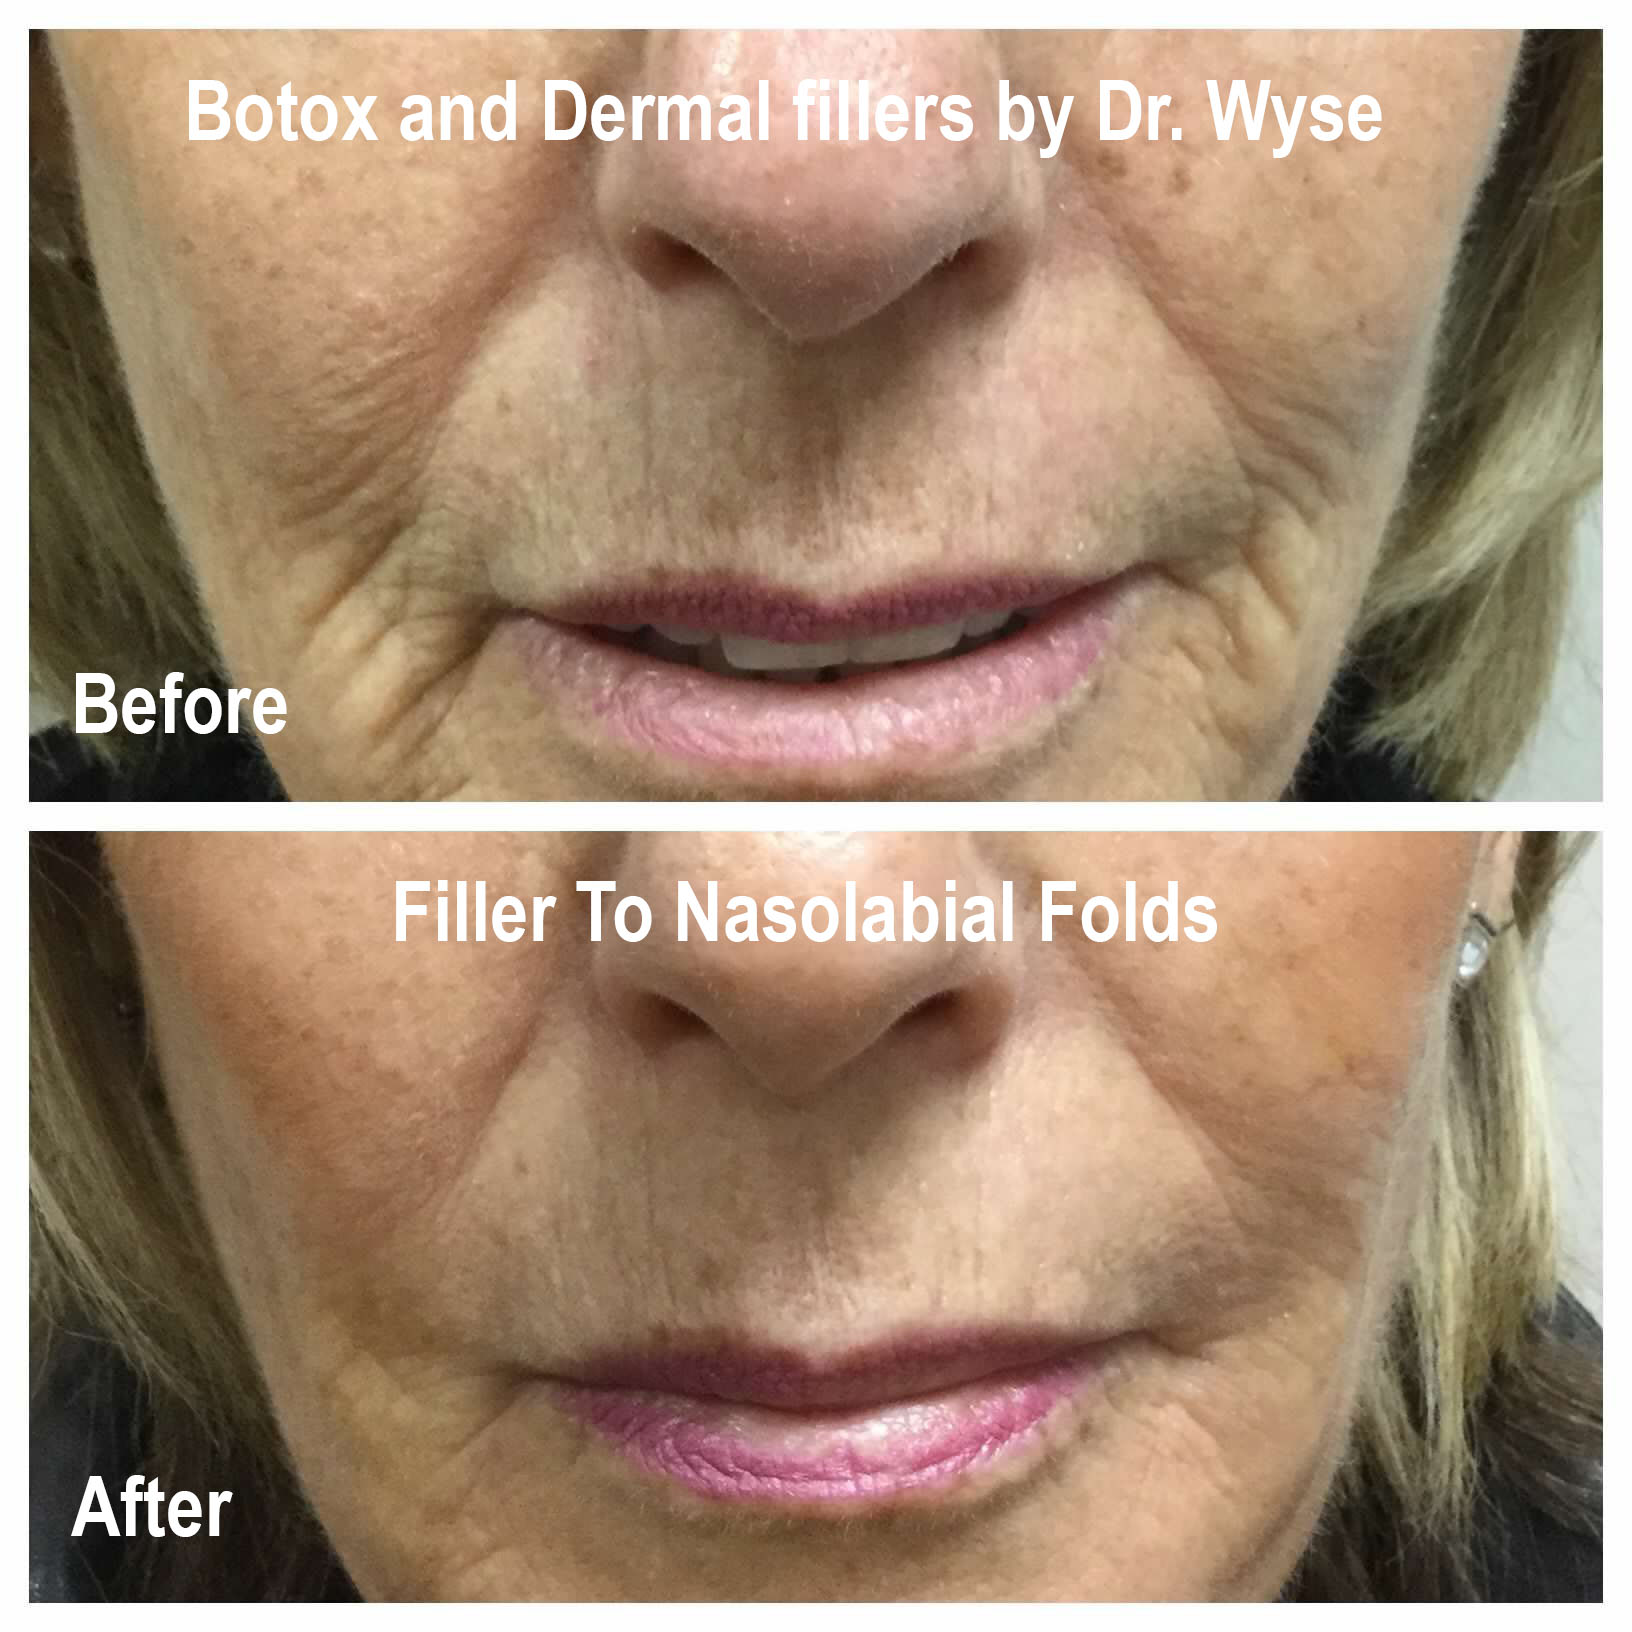 BOTOX and Dermal Fillers by Dr. Wyse